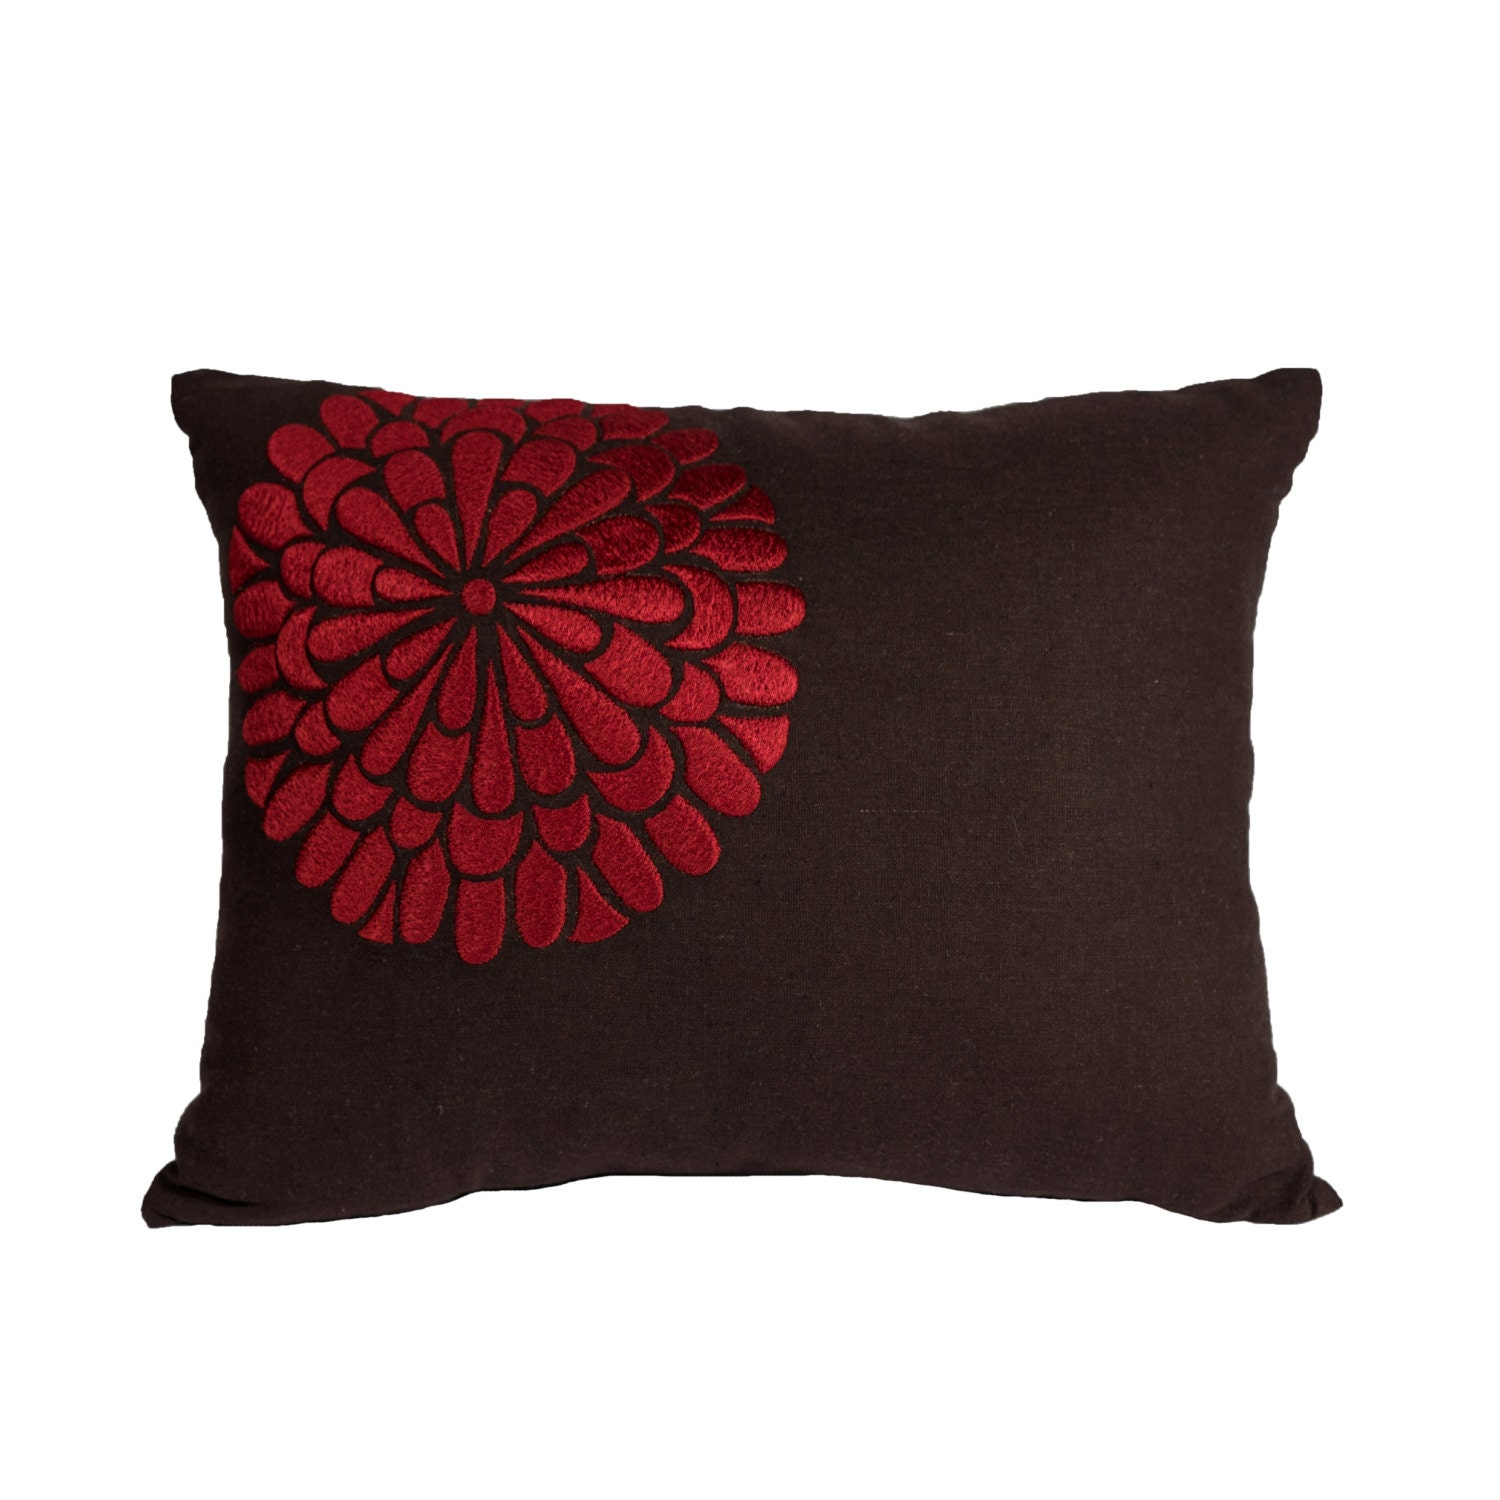 Decorative Floral Pillow Covers : Floral Lumbar Pillow Cover Decorative Pillow Dark Brown